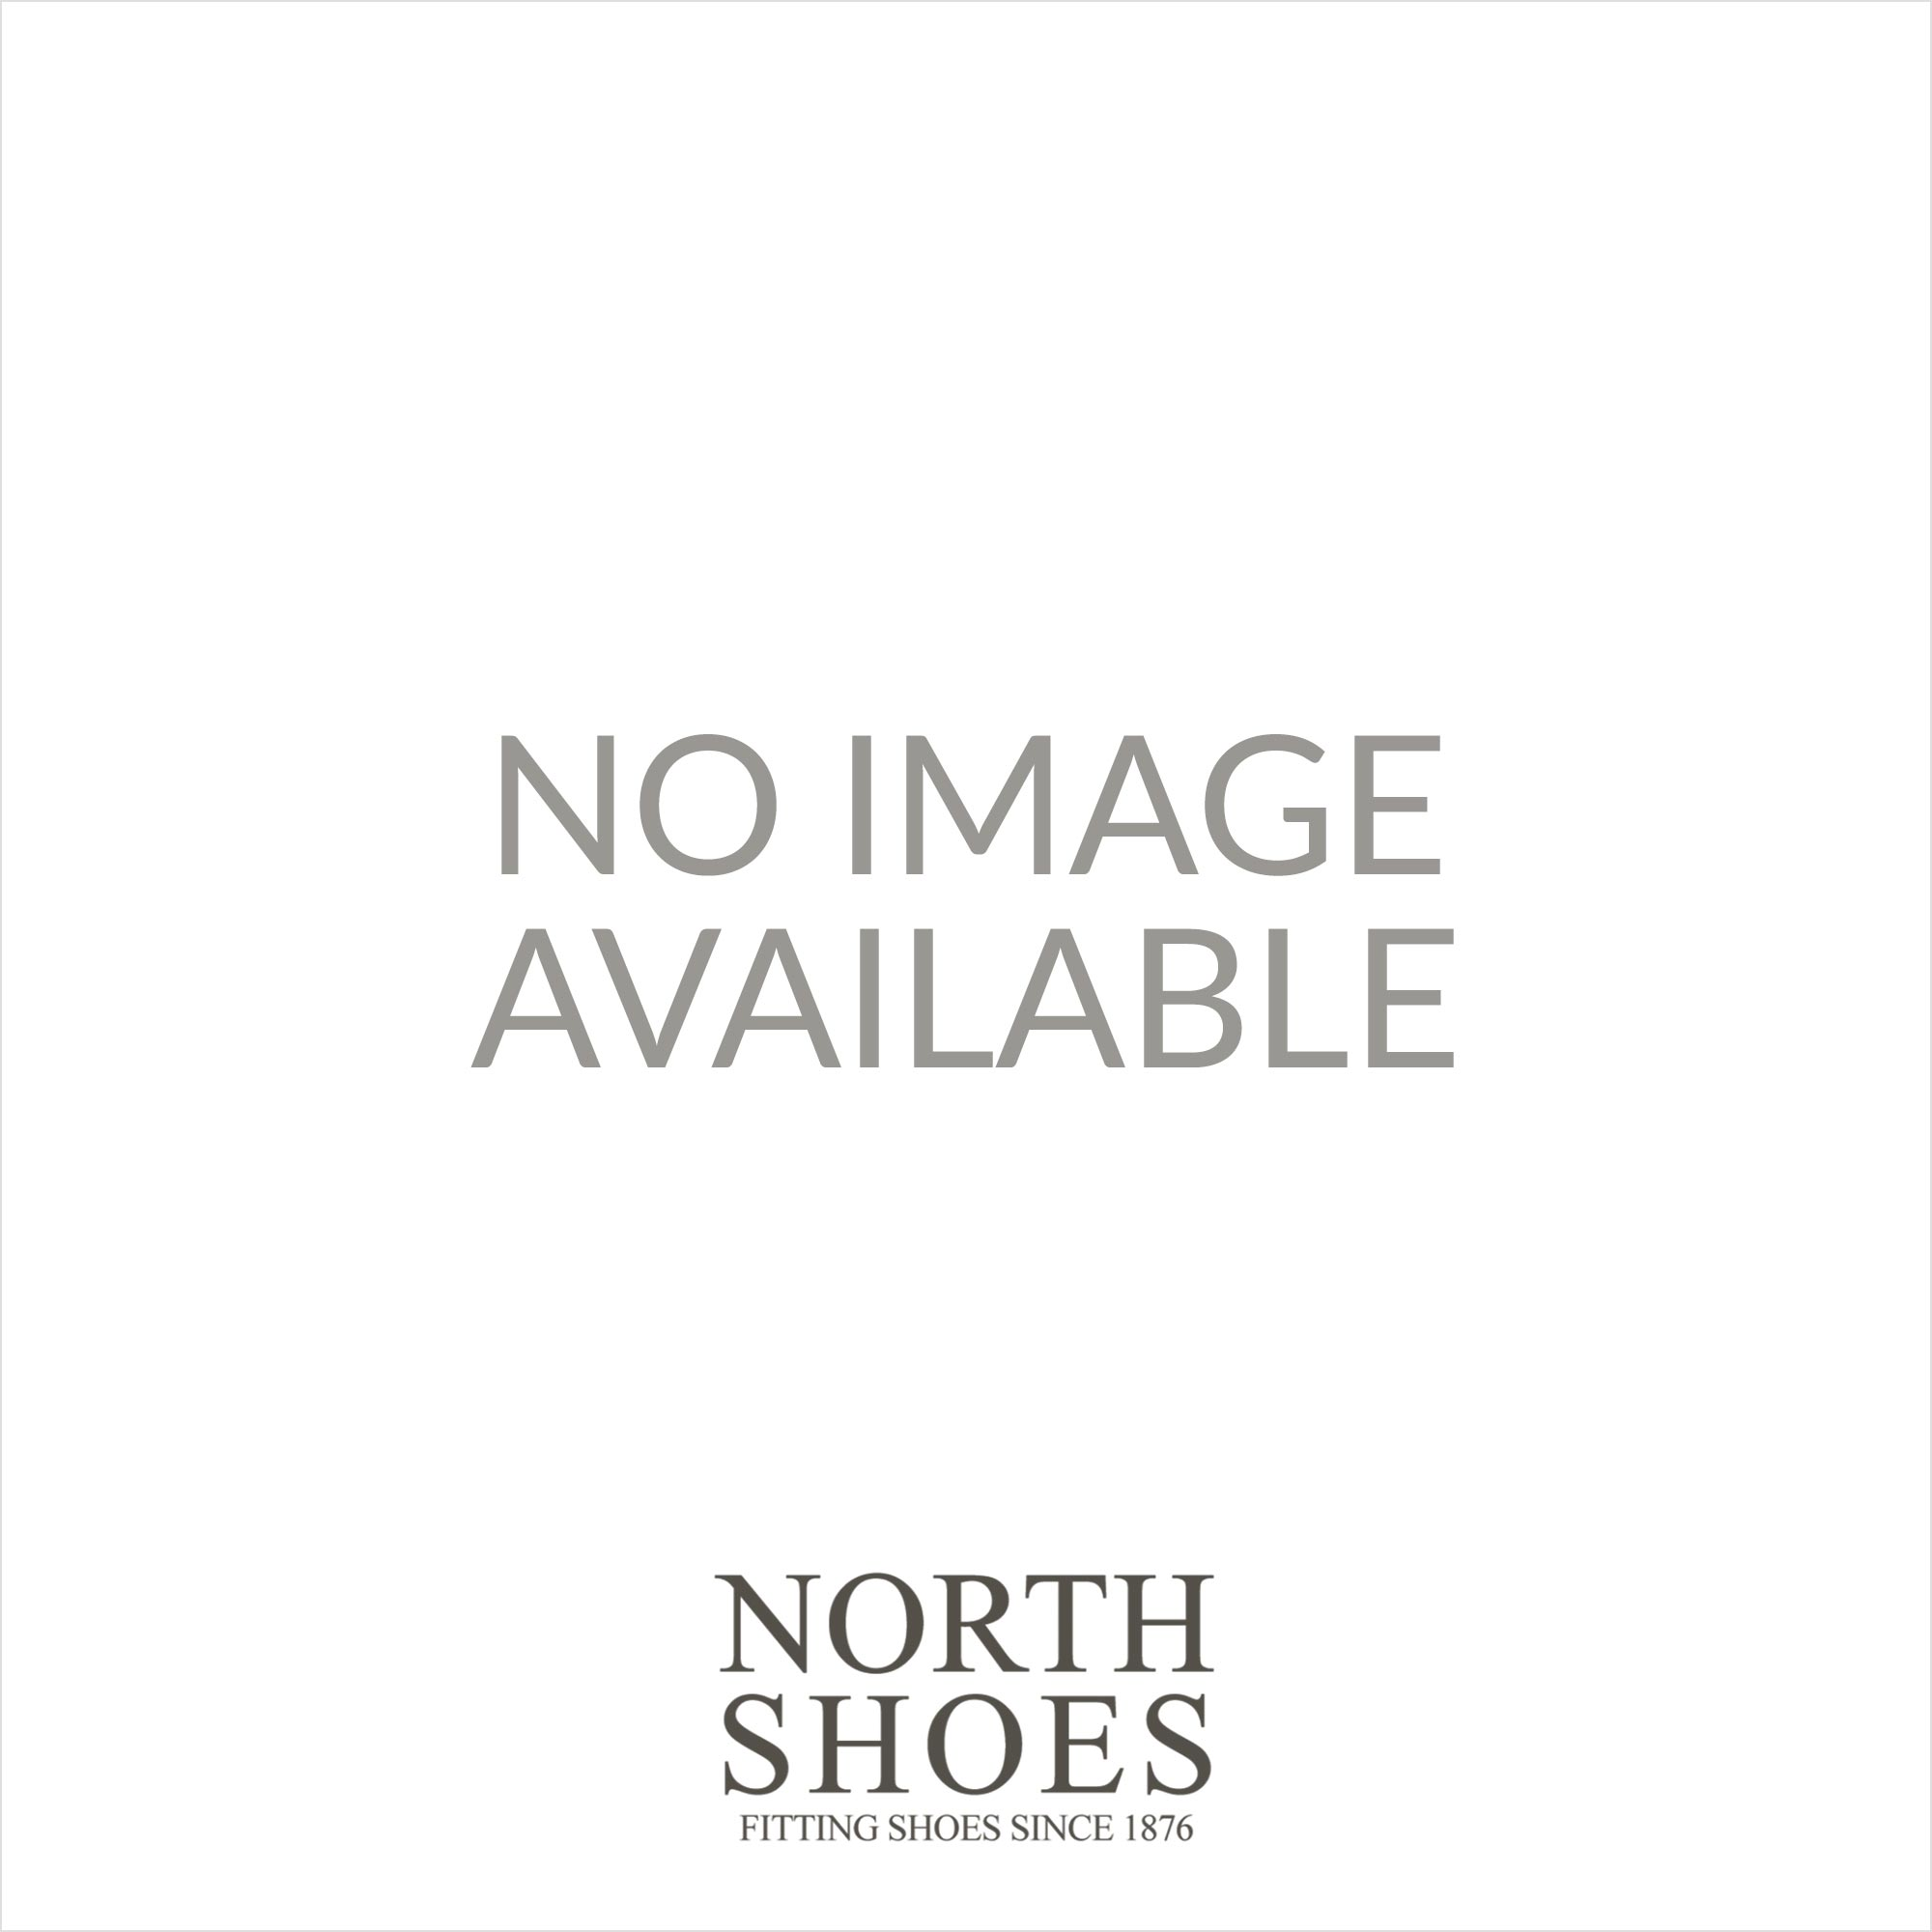 0ad1c55a8aab8 Ecco Peekaboo 751891 01118 Rose Pink Metallic Leather Girls Closed Back  Sandal - Ecco from North Shoes UK